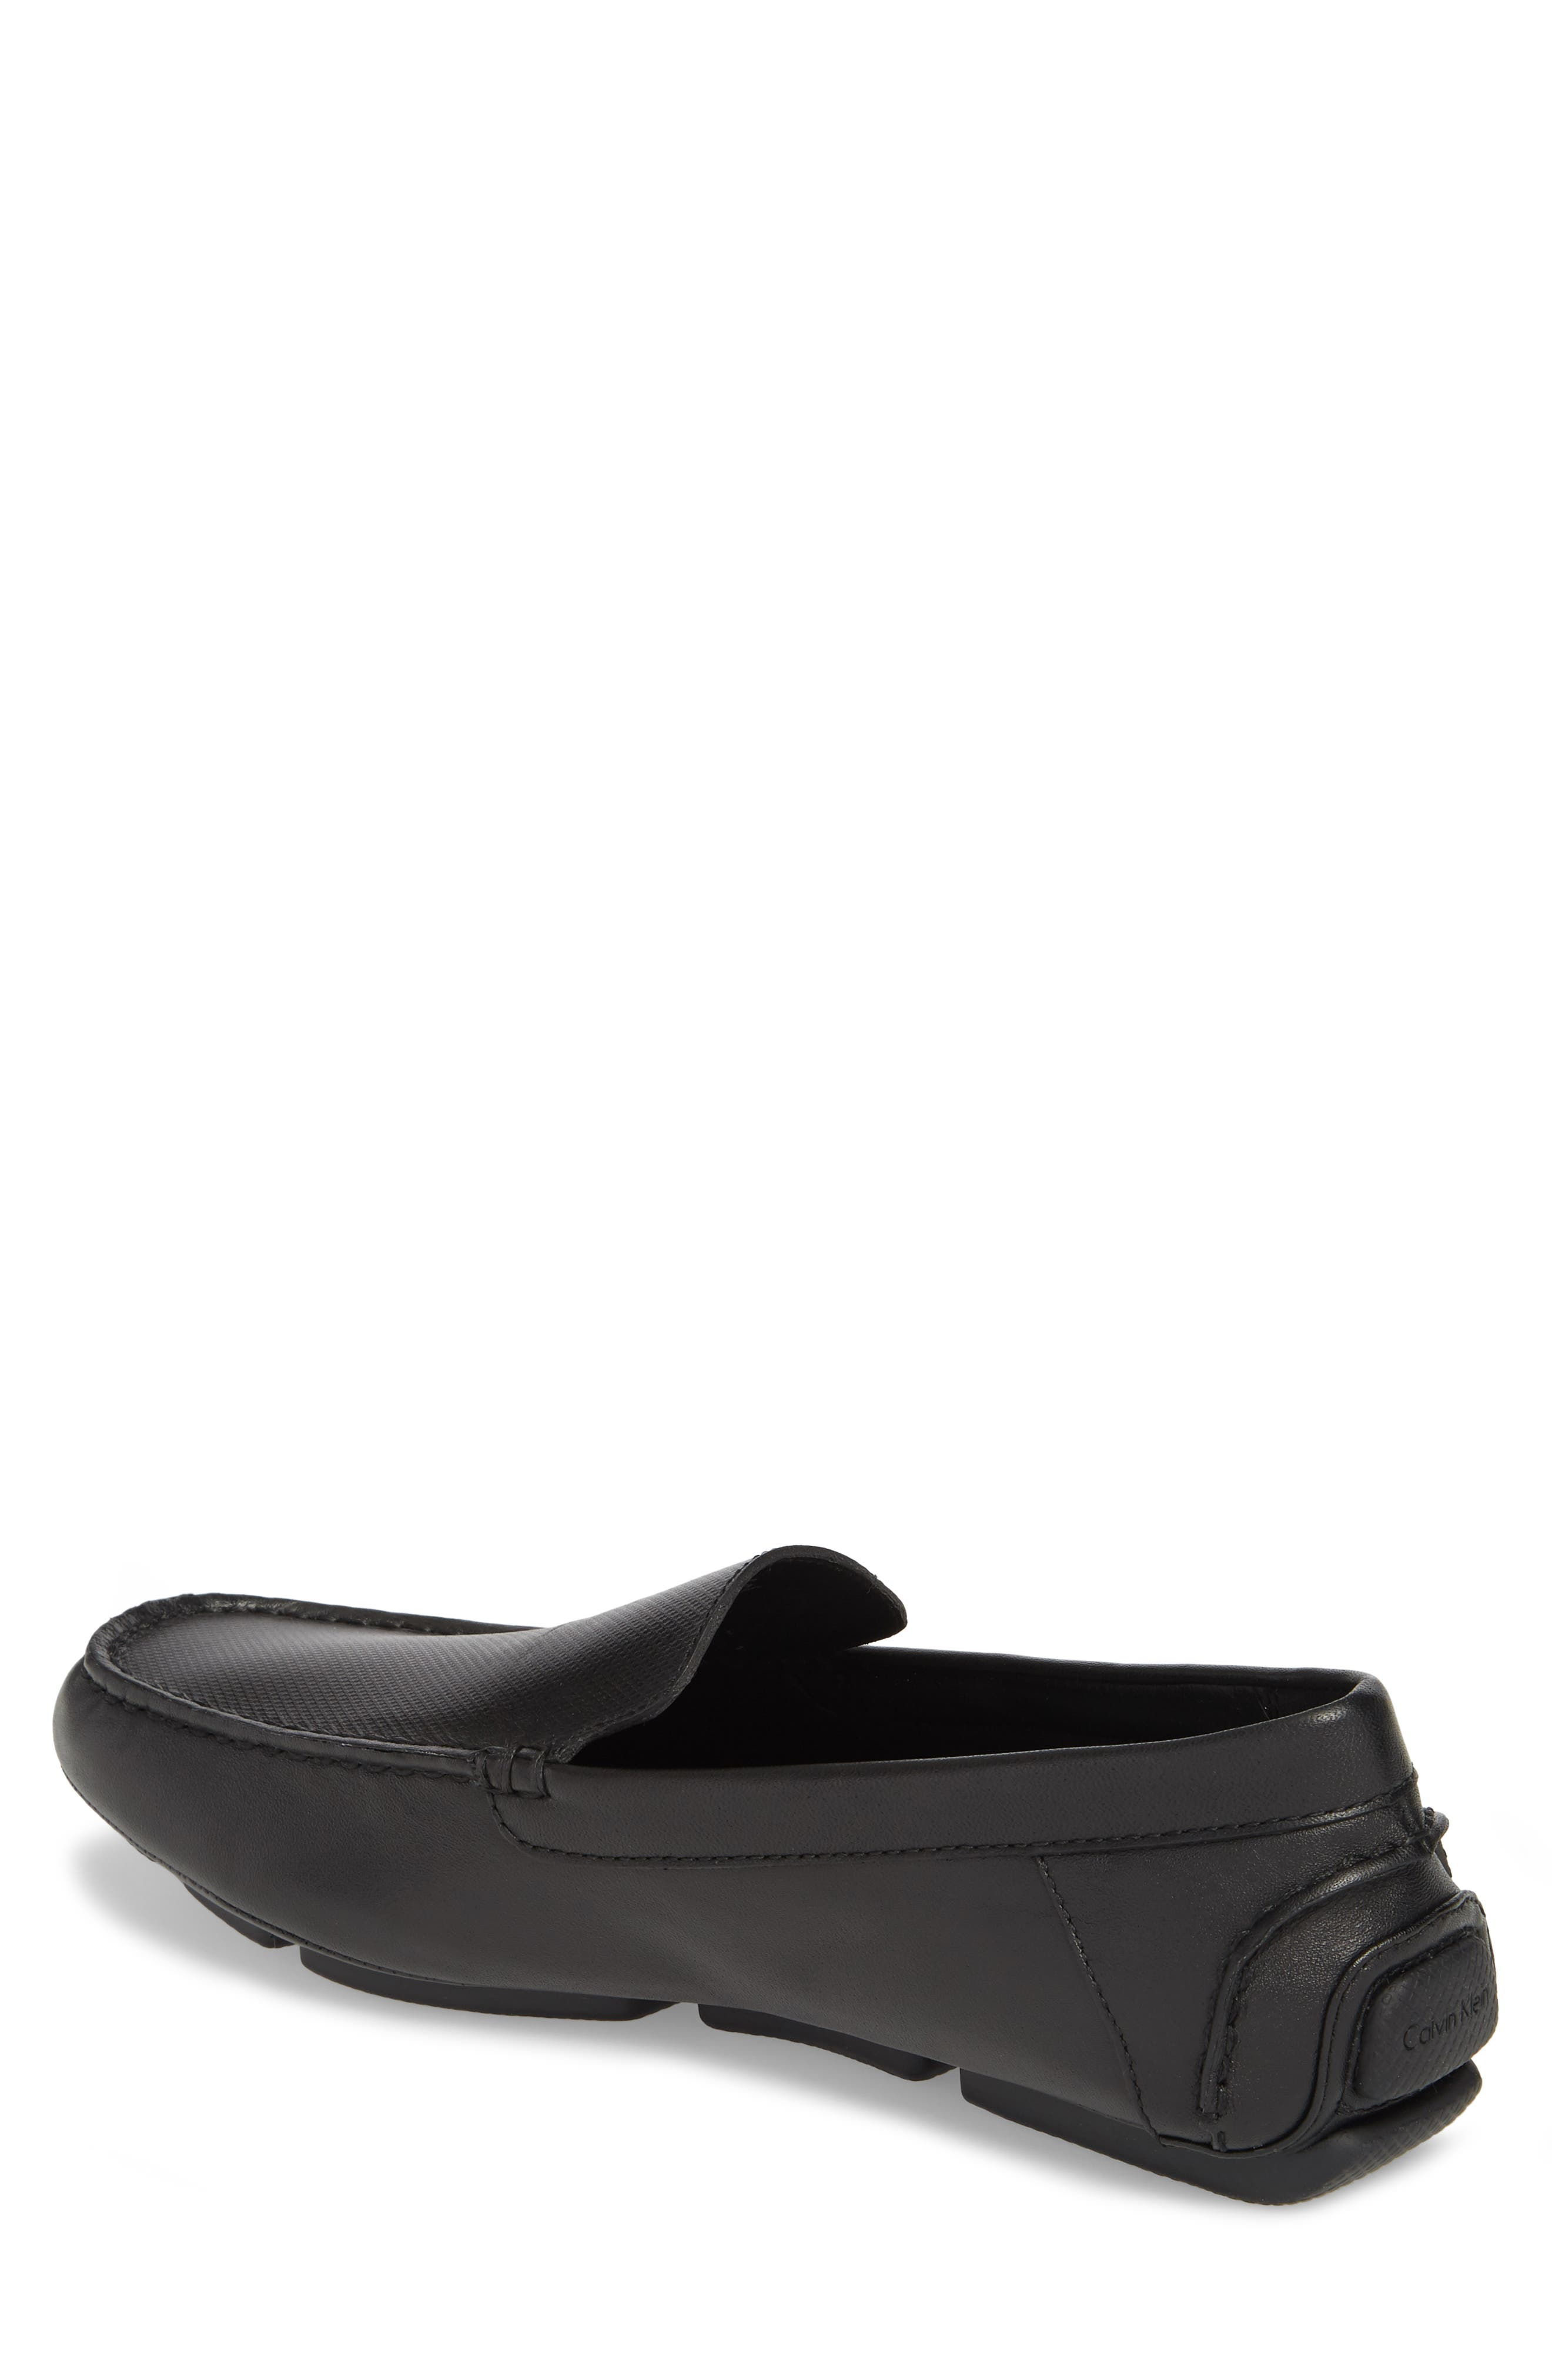 Miguel Textured Driving Loafer,                             Alternate thumbnail 2, color,                             Black Leather